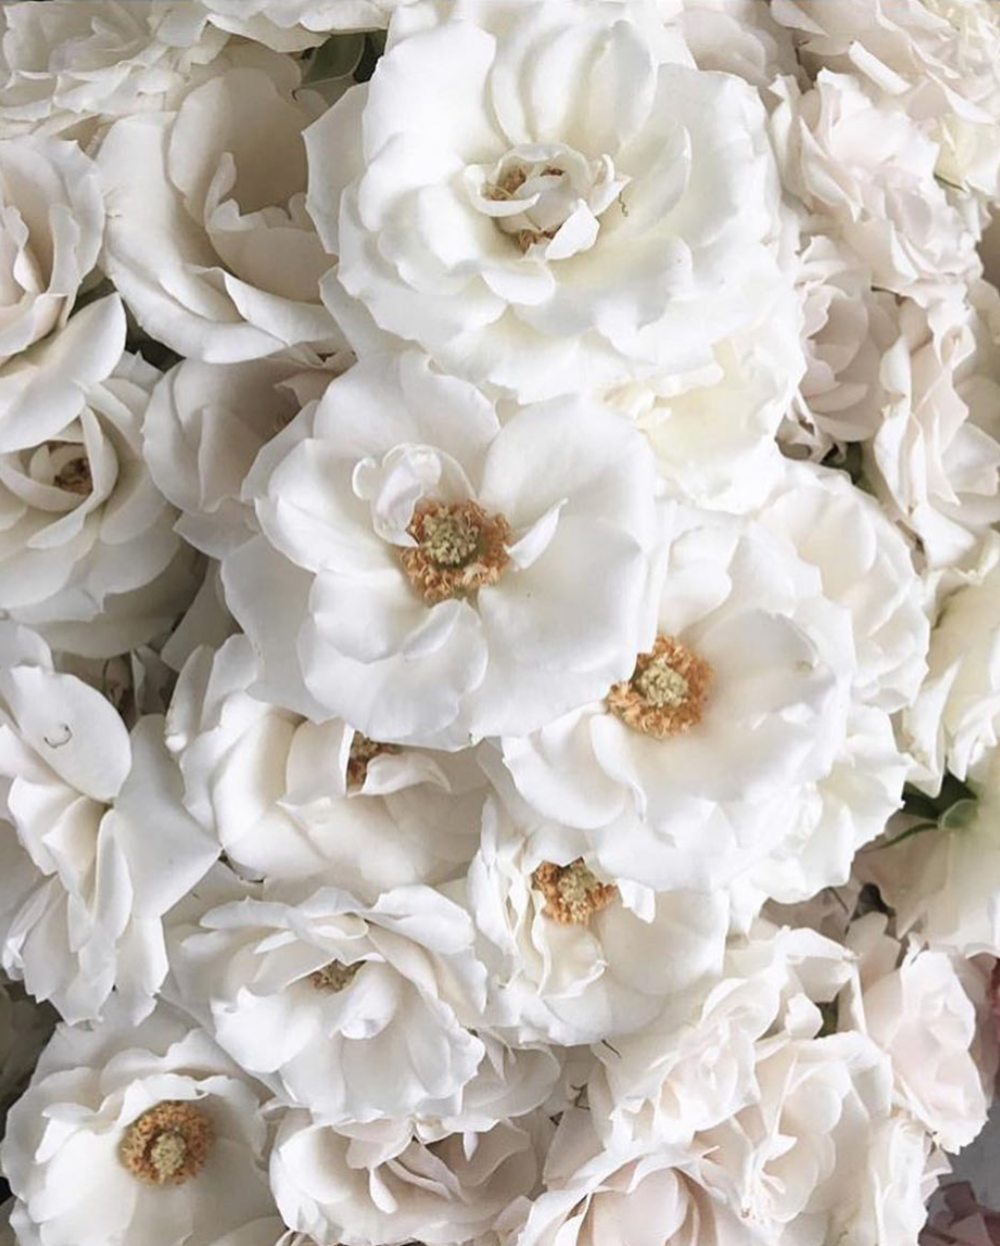 image source: the bridal theory instagram